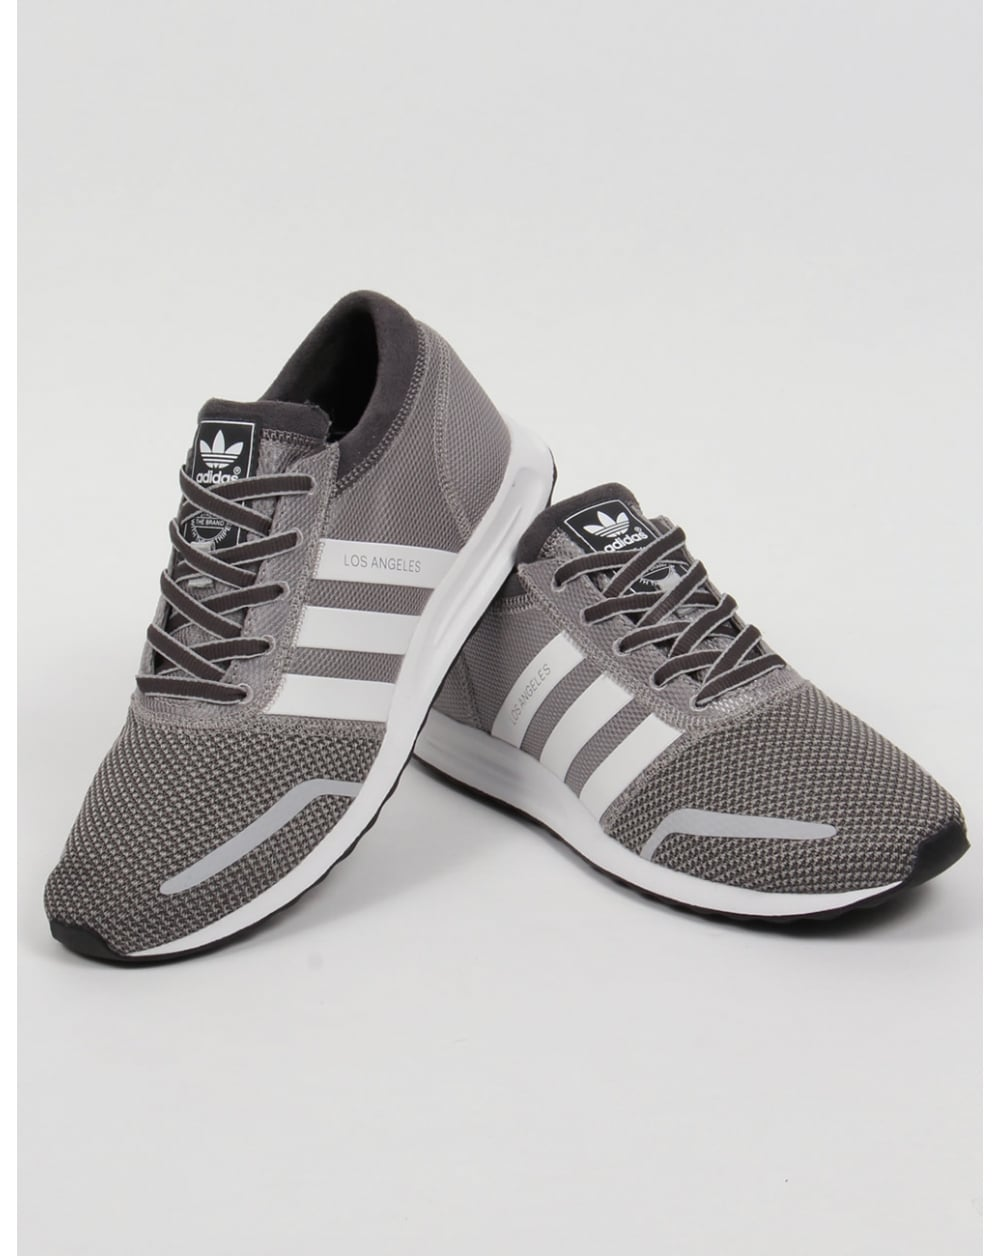 Adidas Los Angeles Trainers